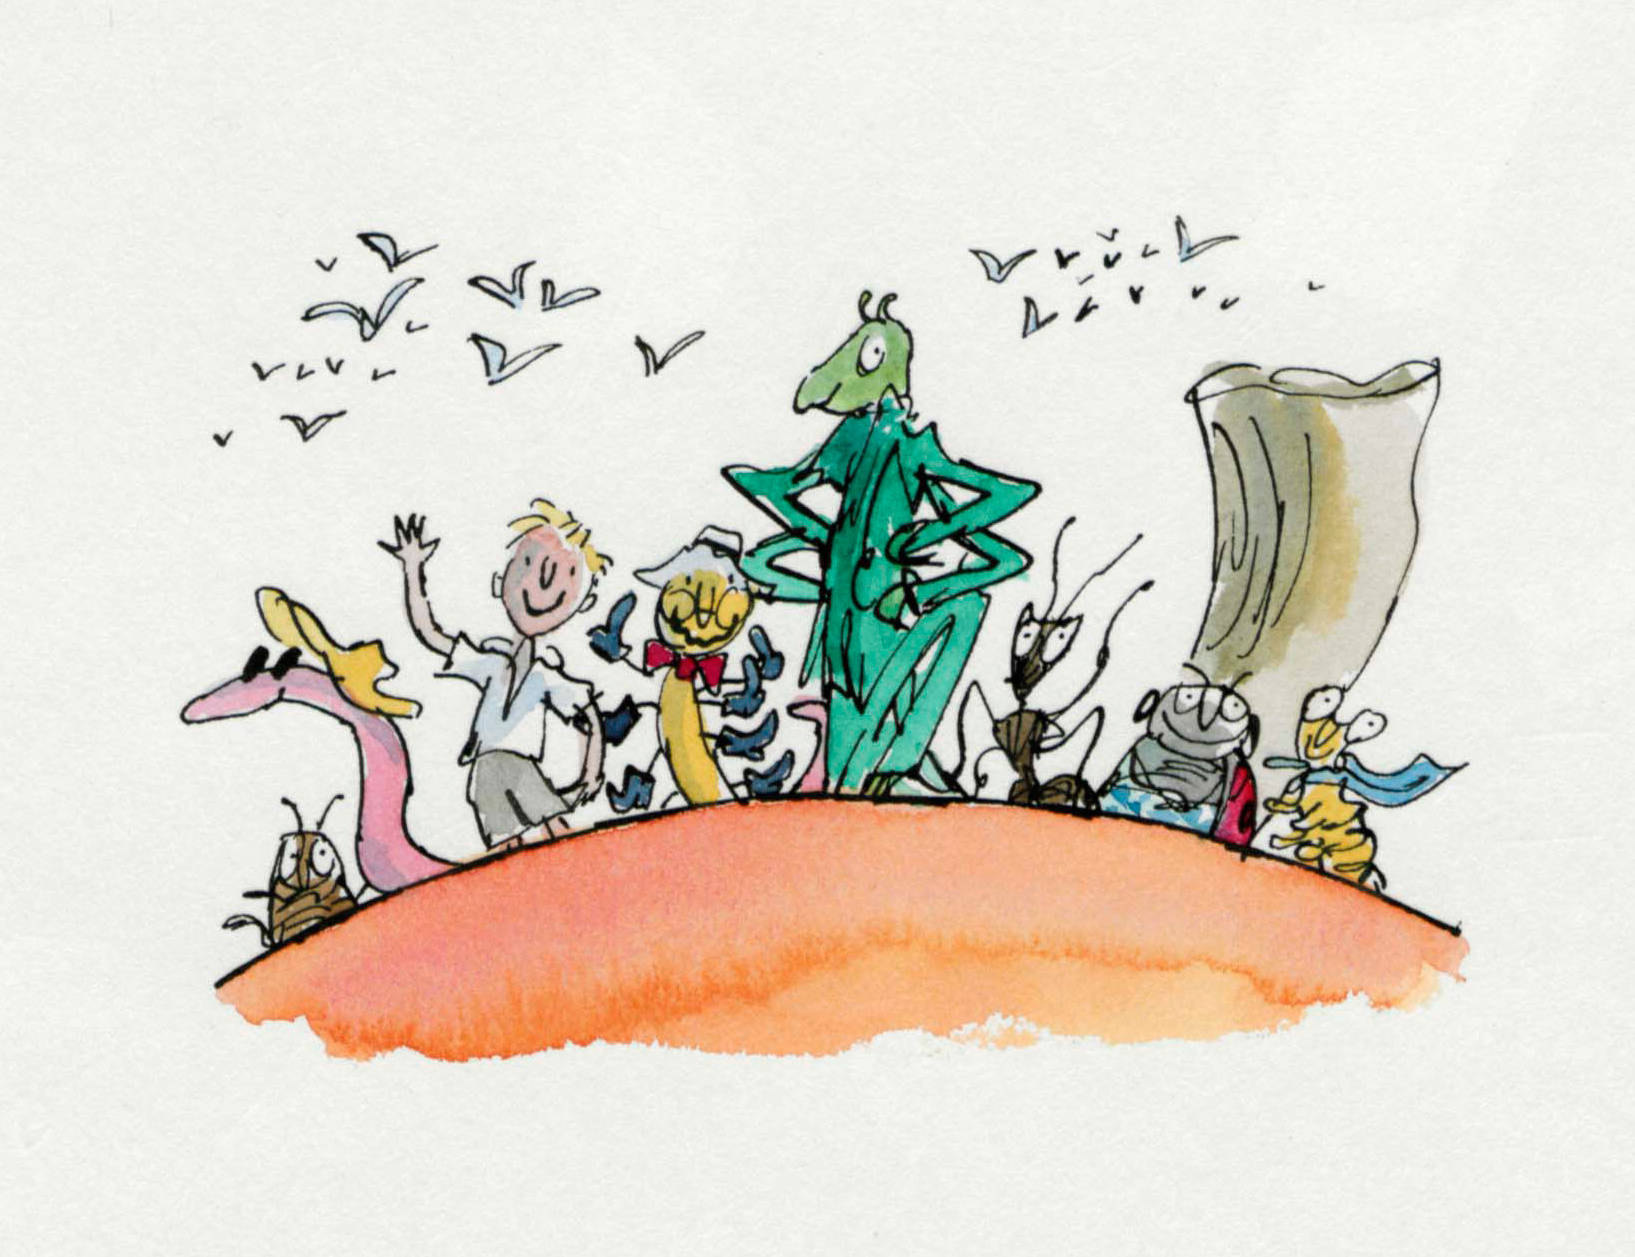 30a5a7ac1fb85e35598b_Quentin-Blake-cover-illustration-from-James-and-the-Giant-Peach-2002-c-Quentin-Blake.jpg